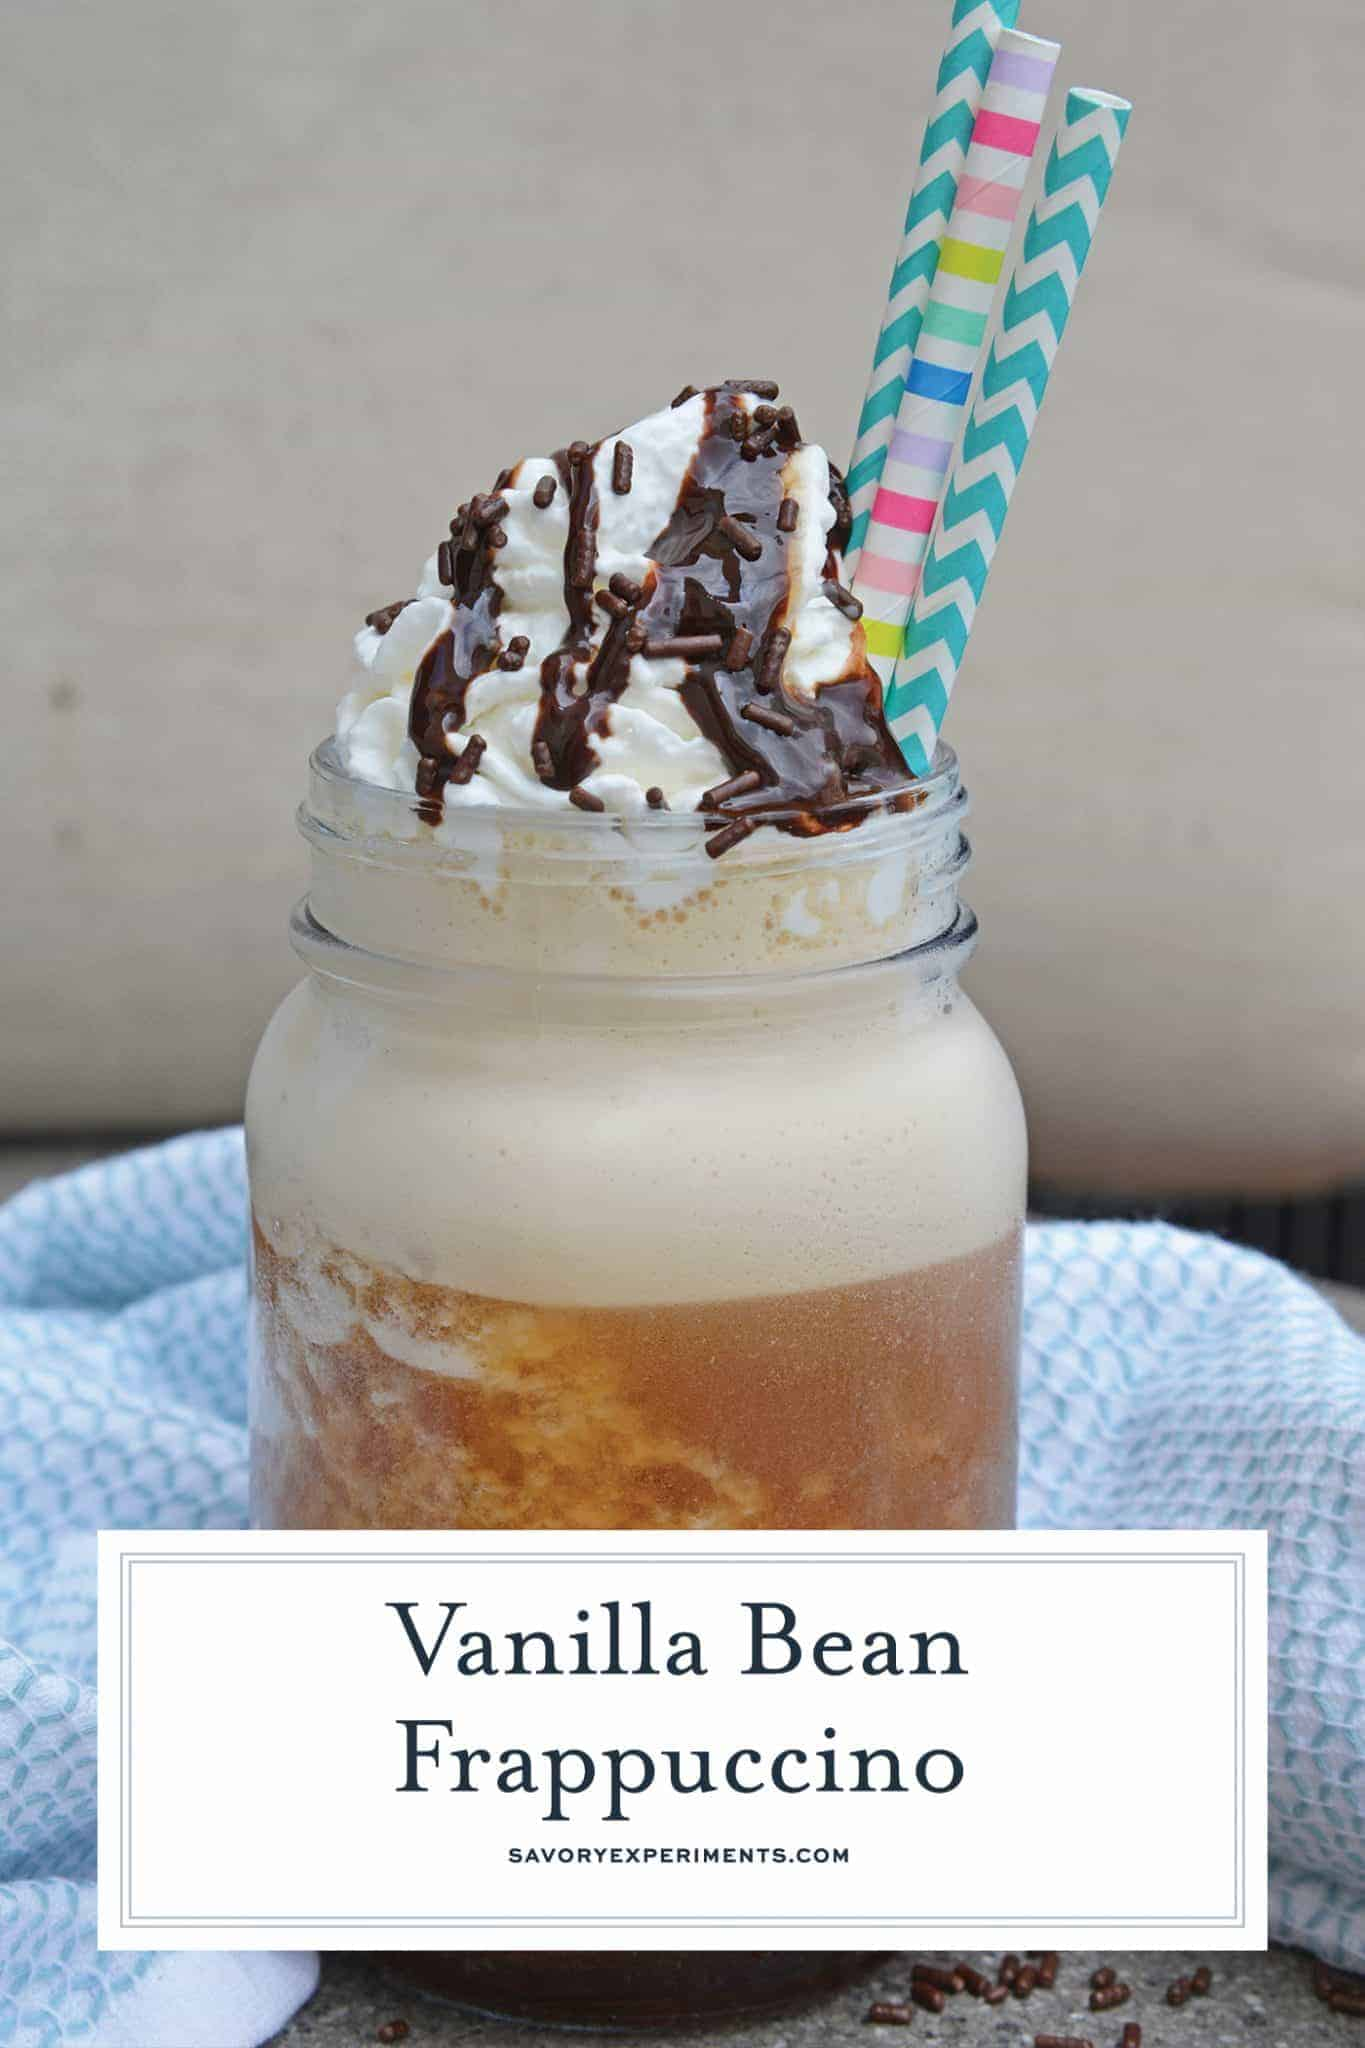 This Vanilla Bean Frappuccino Cocktail is a copycat version of the Starbucks Vanilla Bean Frappuccino that can be made at home to save you money! #vanillabeanfrappuccino #coffeecocktails #vanillacocktails www.savoryexperiments.com